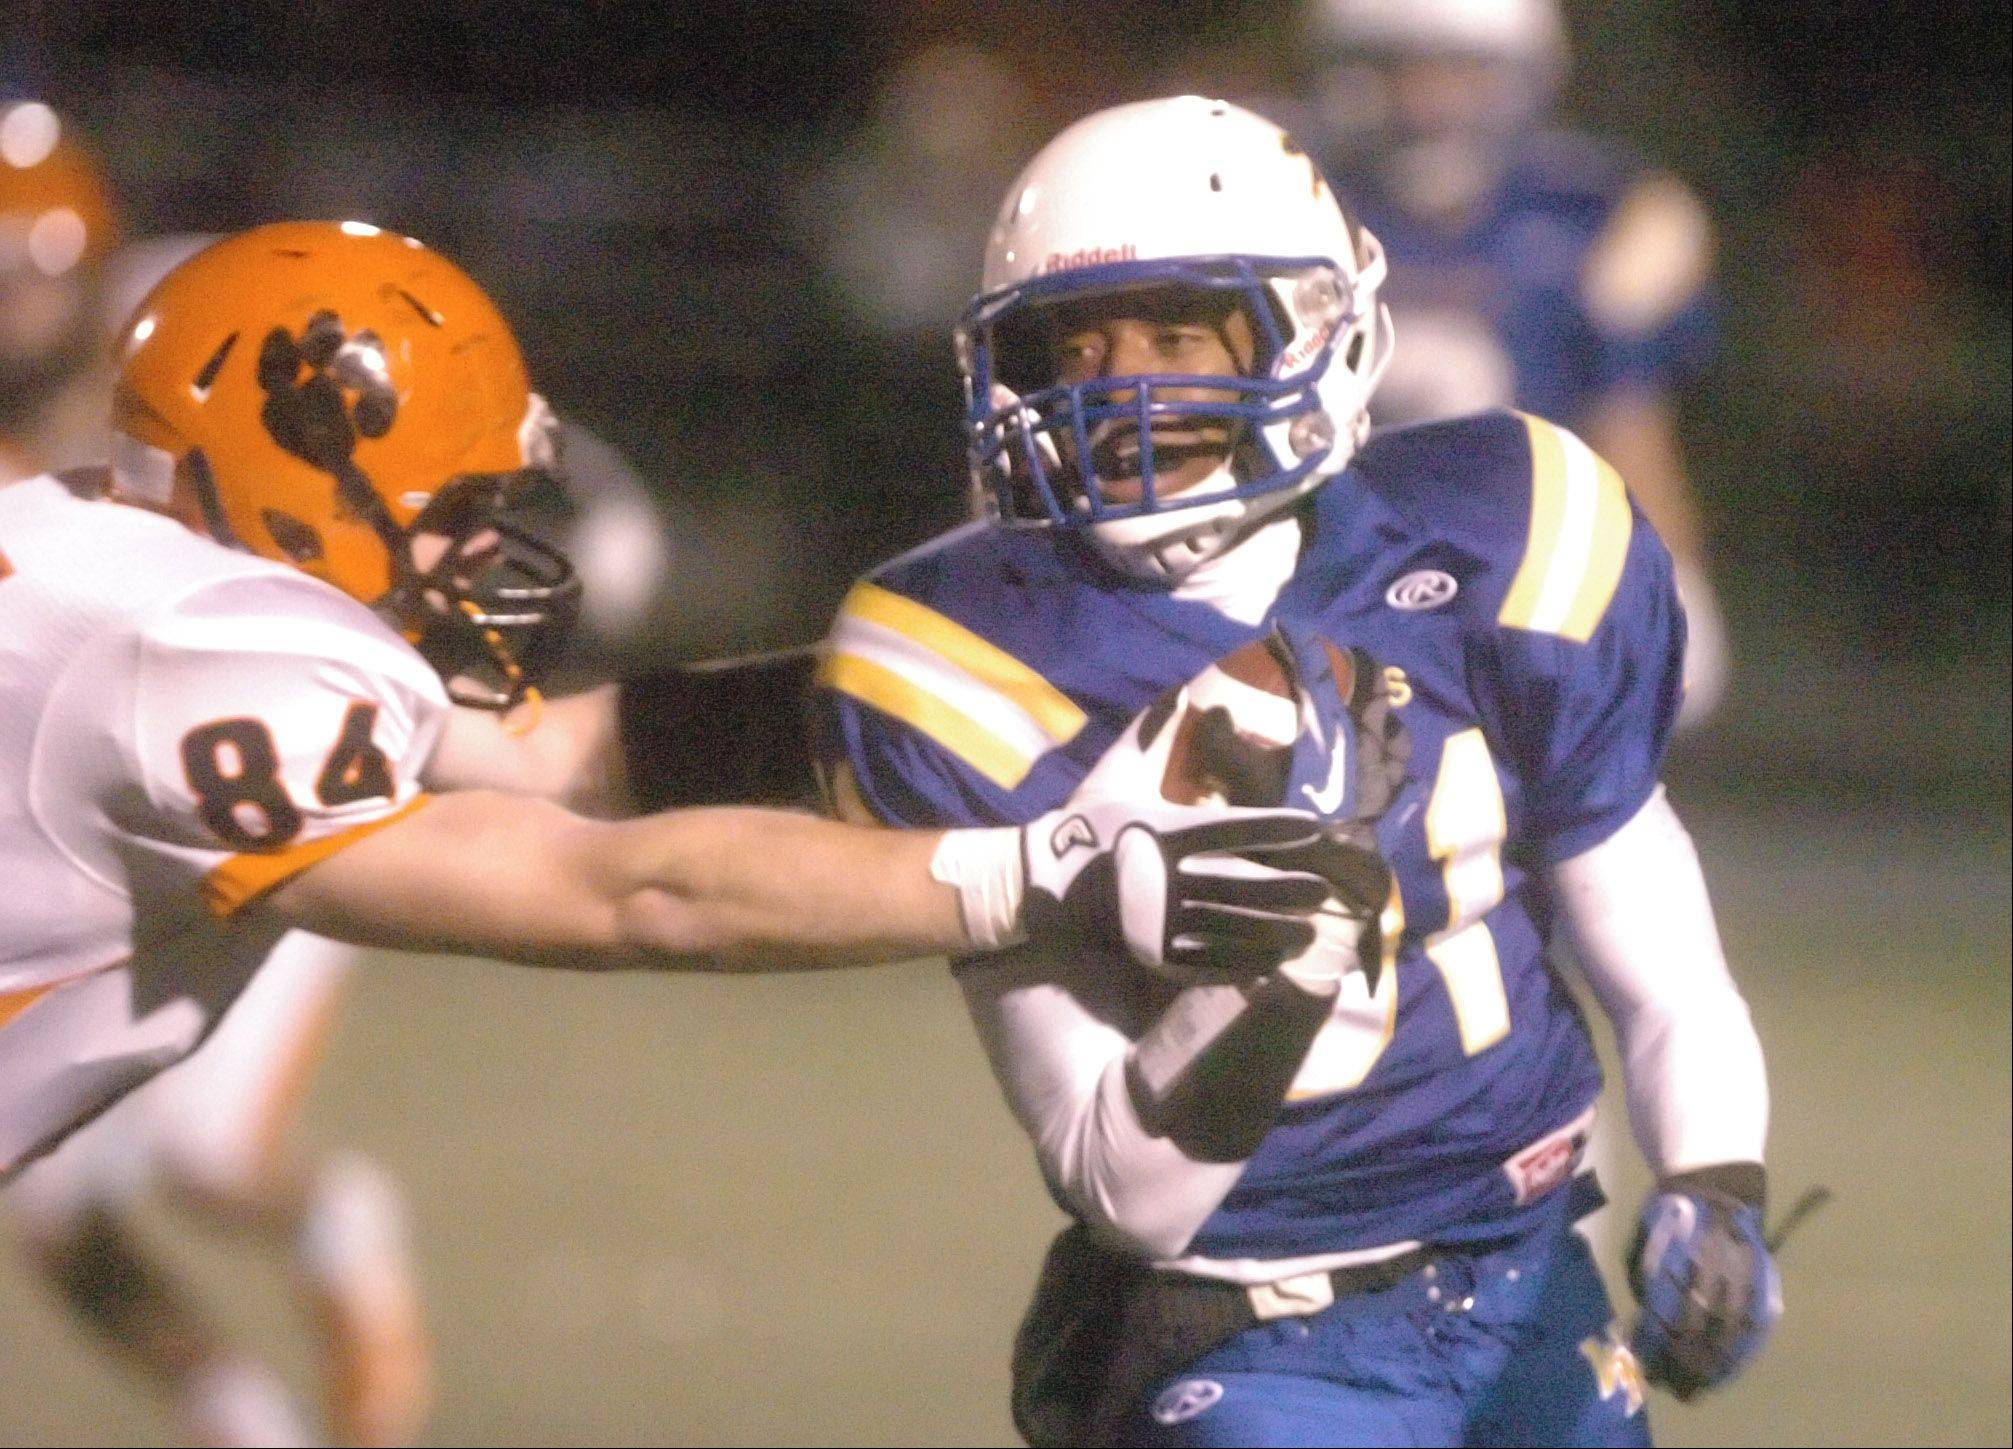 Images: Wheaton Warrenville South at Wheaton North Friday night Football